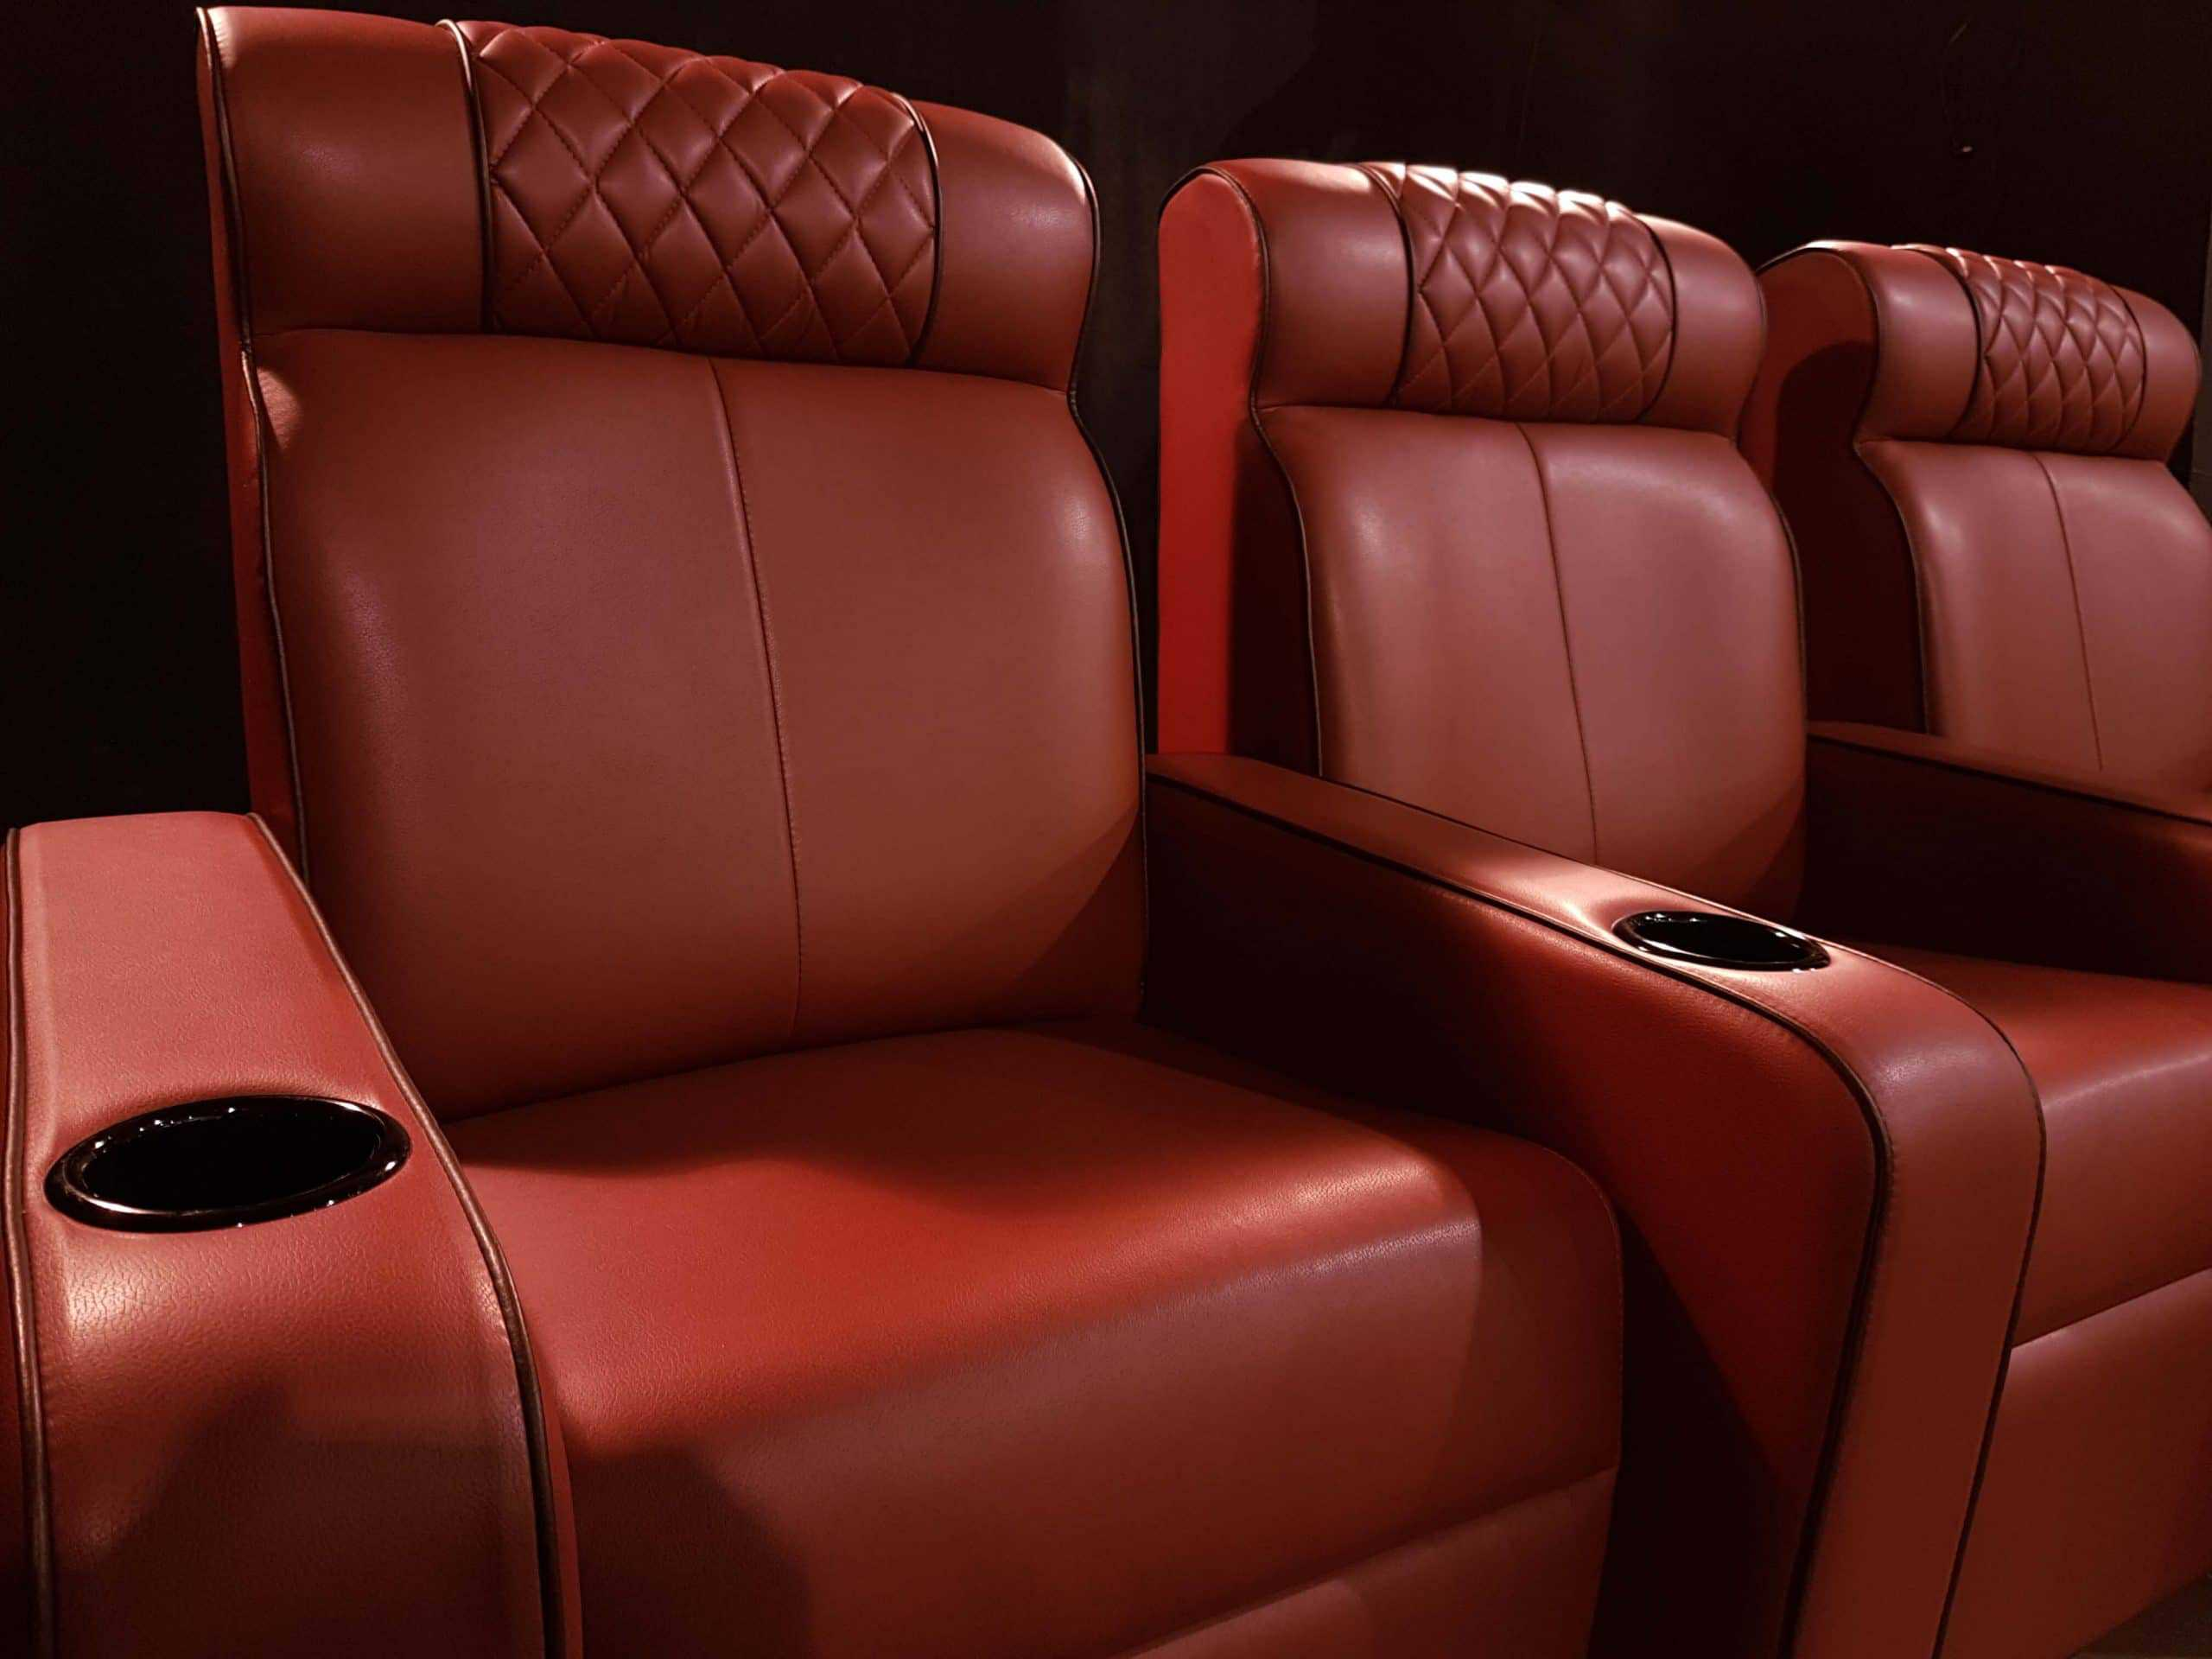 red_home_theater_chairs d9 image